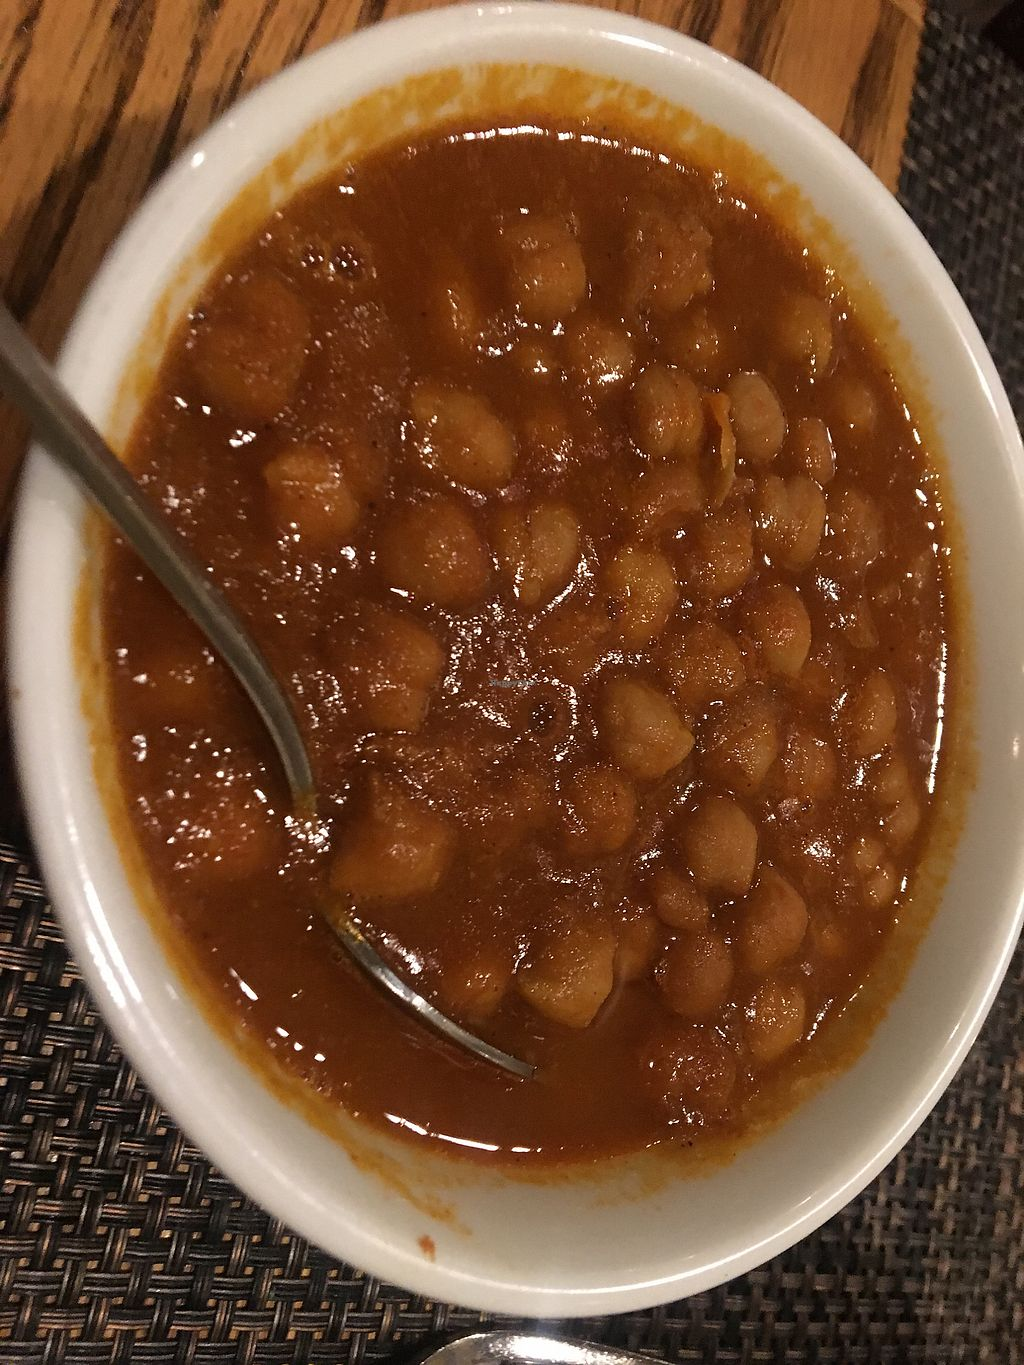 "Photo of Chutney Masala  by <a href=""/members/profile/LilMsVegan"">LilMsVegan</a> <br/>Chana Masala - my go to!!  <br/> December 1, 2017  - <a href='/contact/abuse/image/87826/331131'>Report</a>"